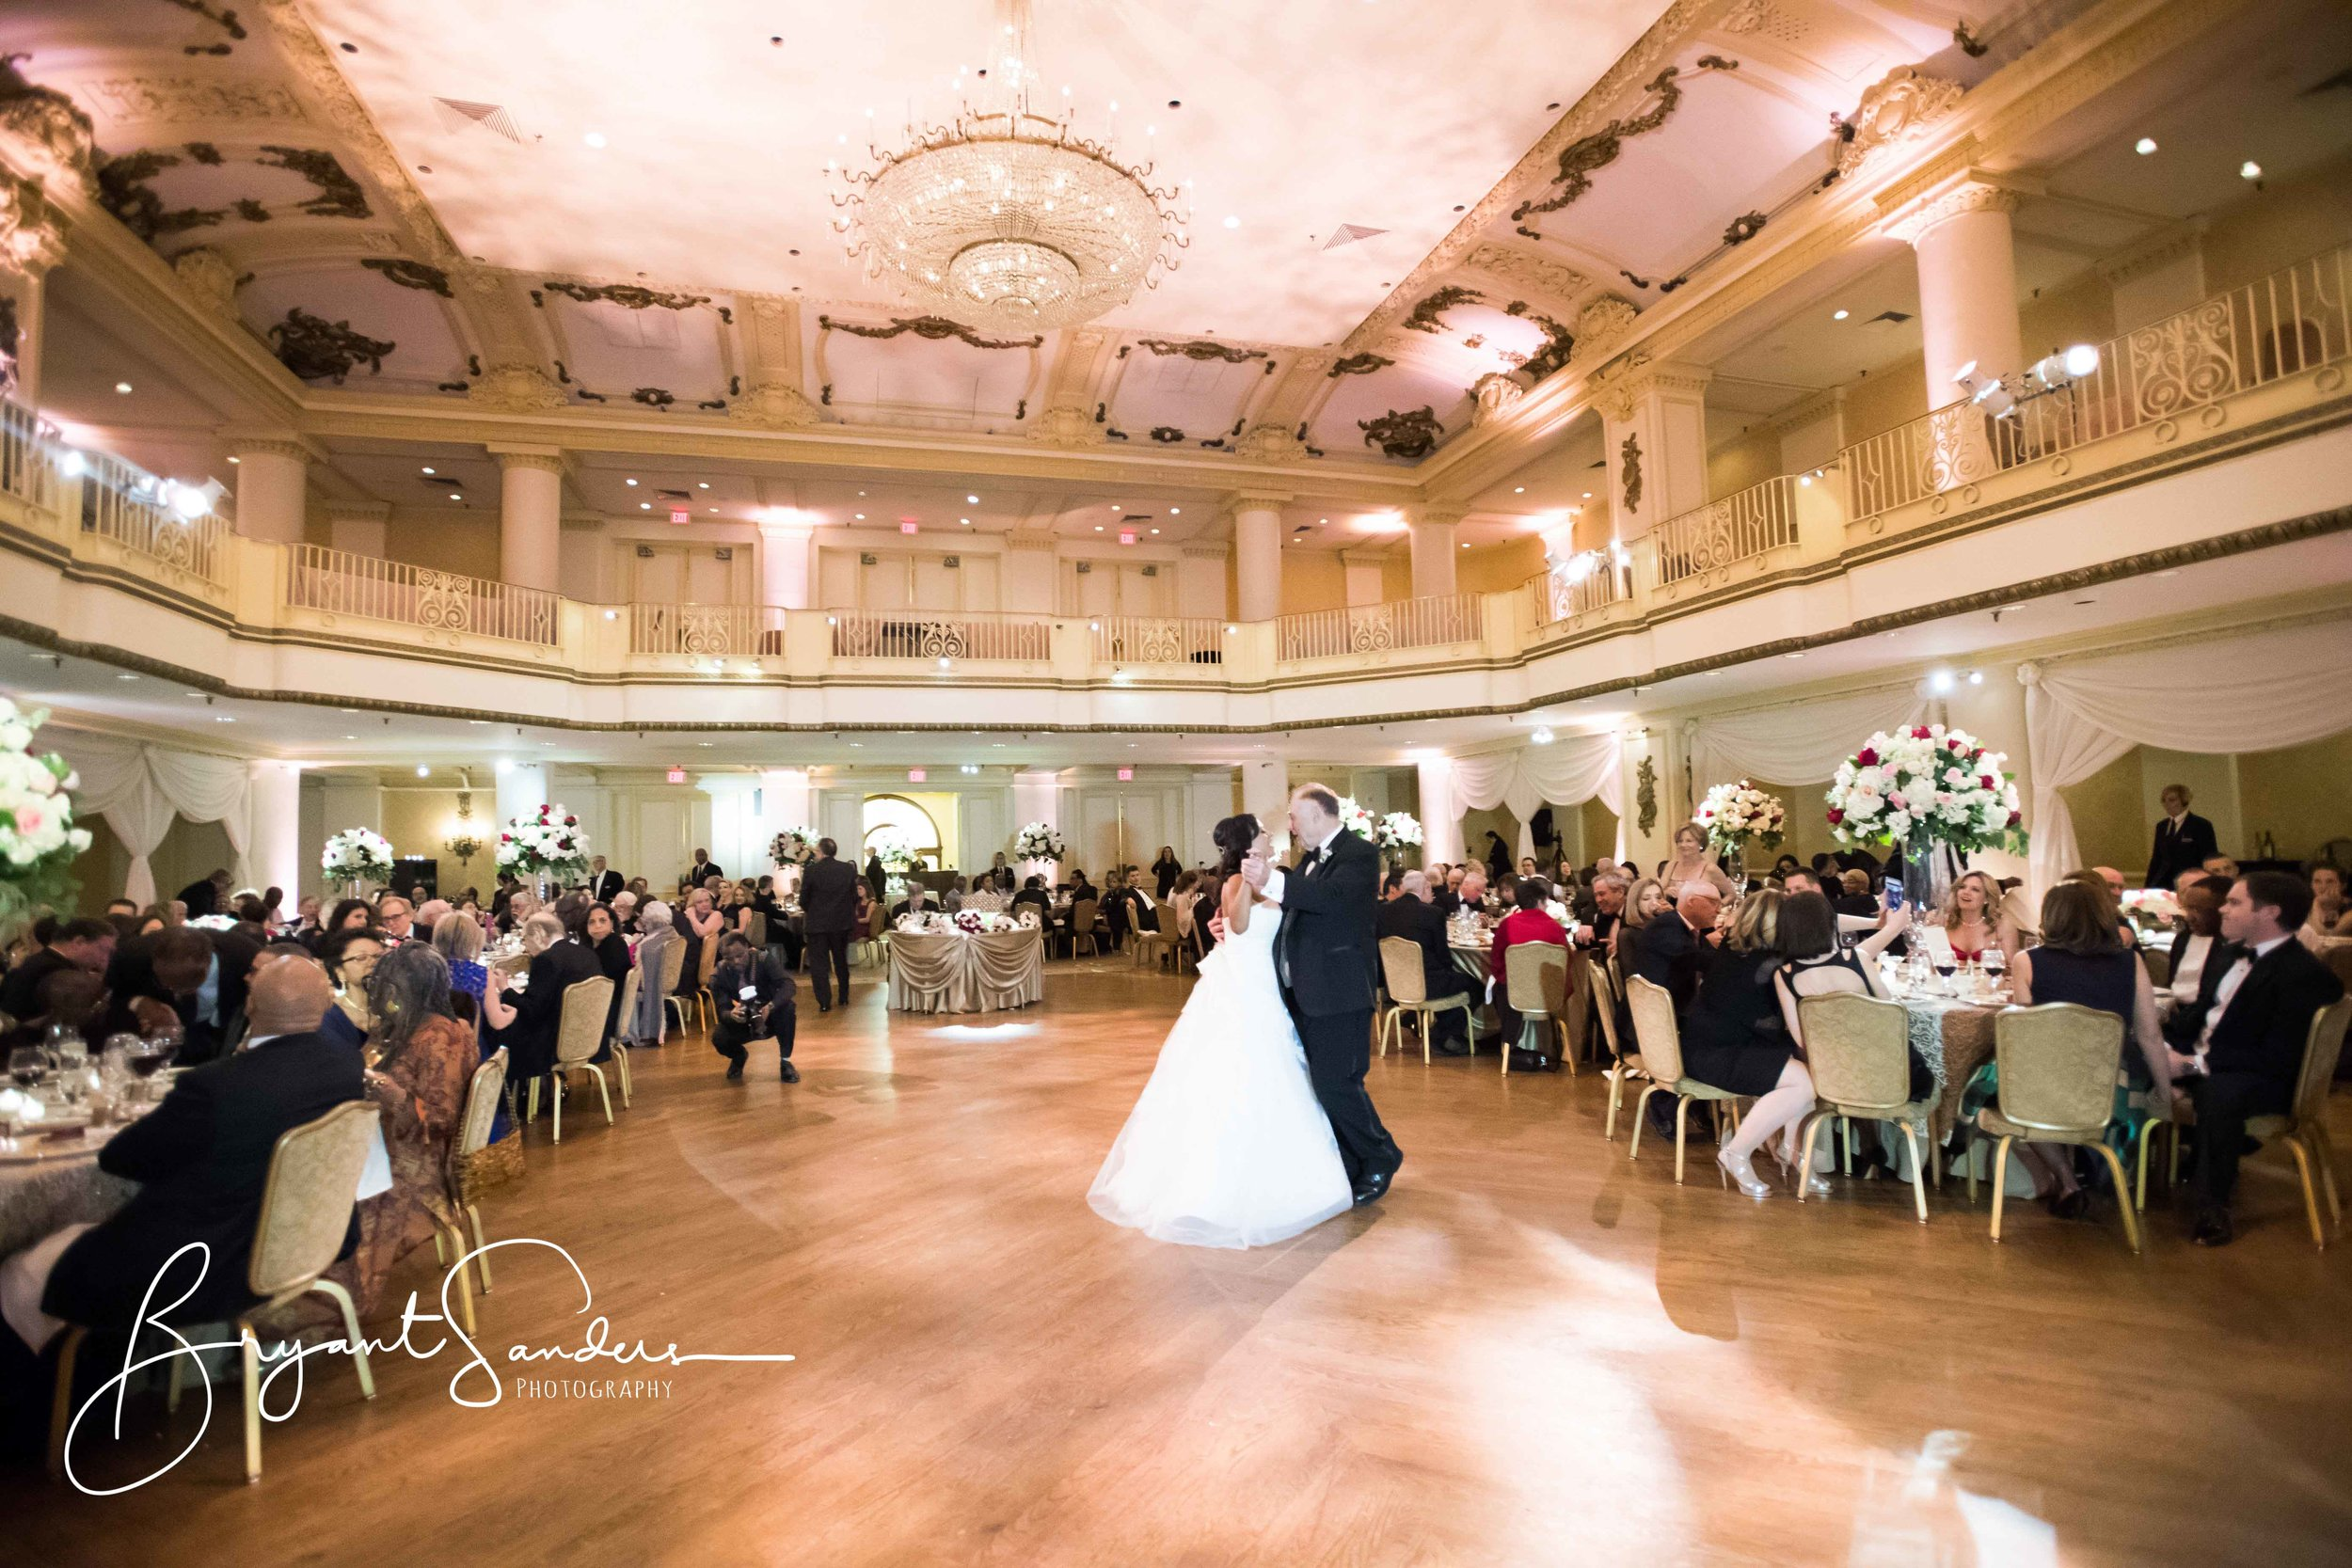 MANAGEMENT - We'll oversee every moment and handle every detail, so you can thoroughly enjoy your event. From load-in to break-down, we'll ensure all goes as planned. Day-of Services available.